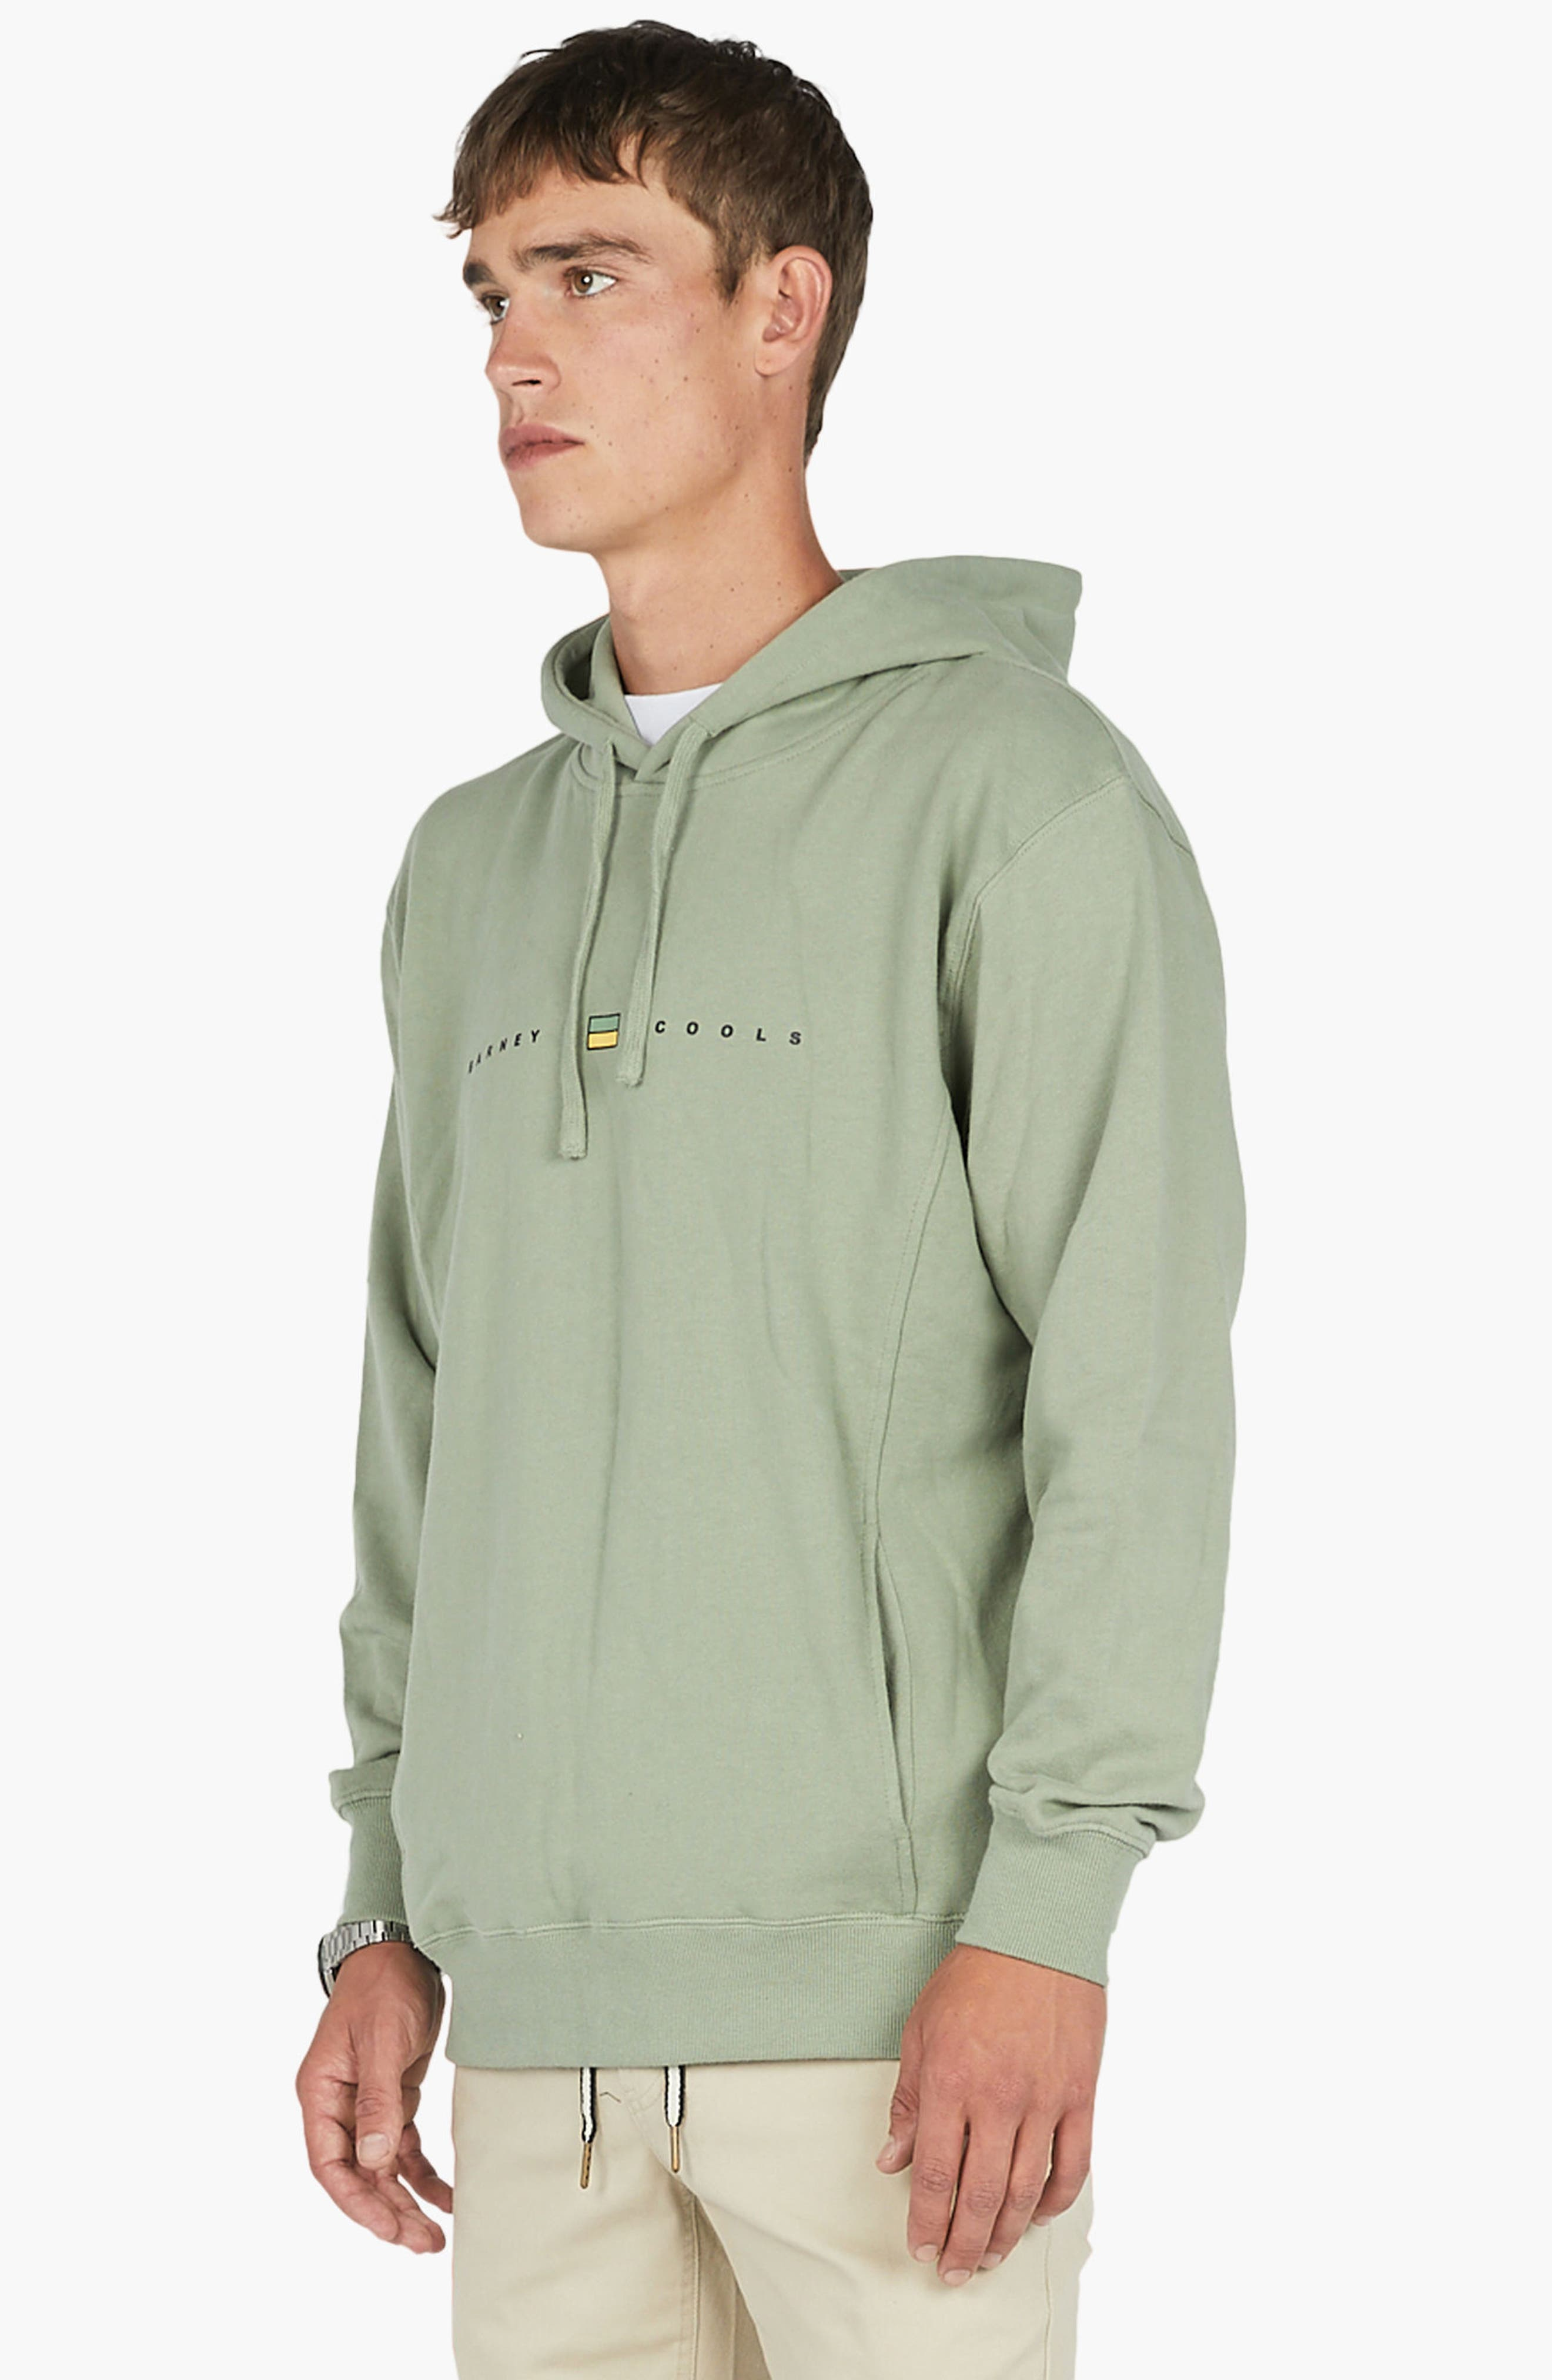 B. Cause Hoodie,                             Alternate thumbnail 4, color,                             Seagrass